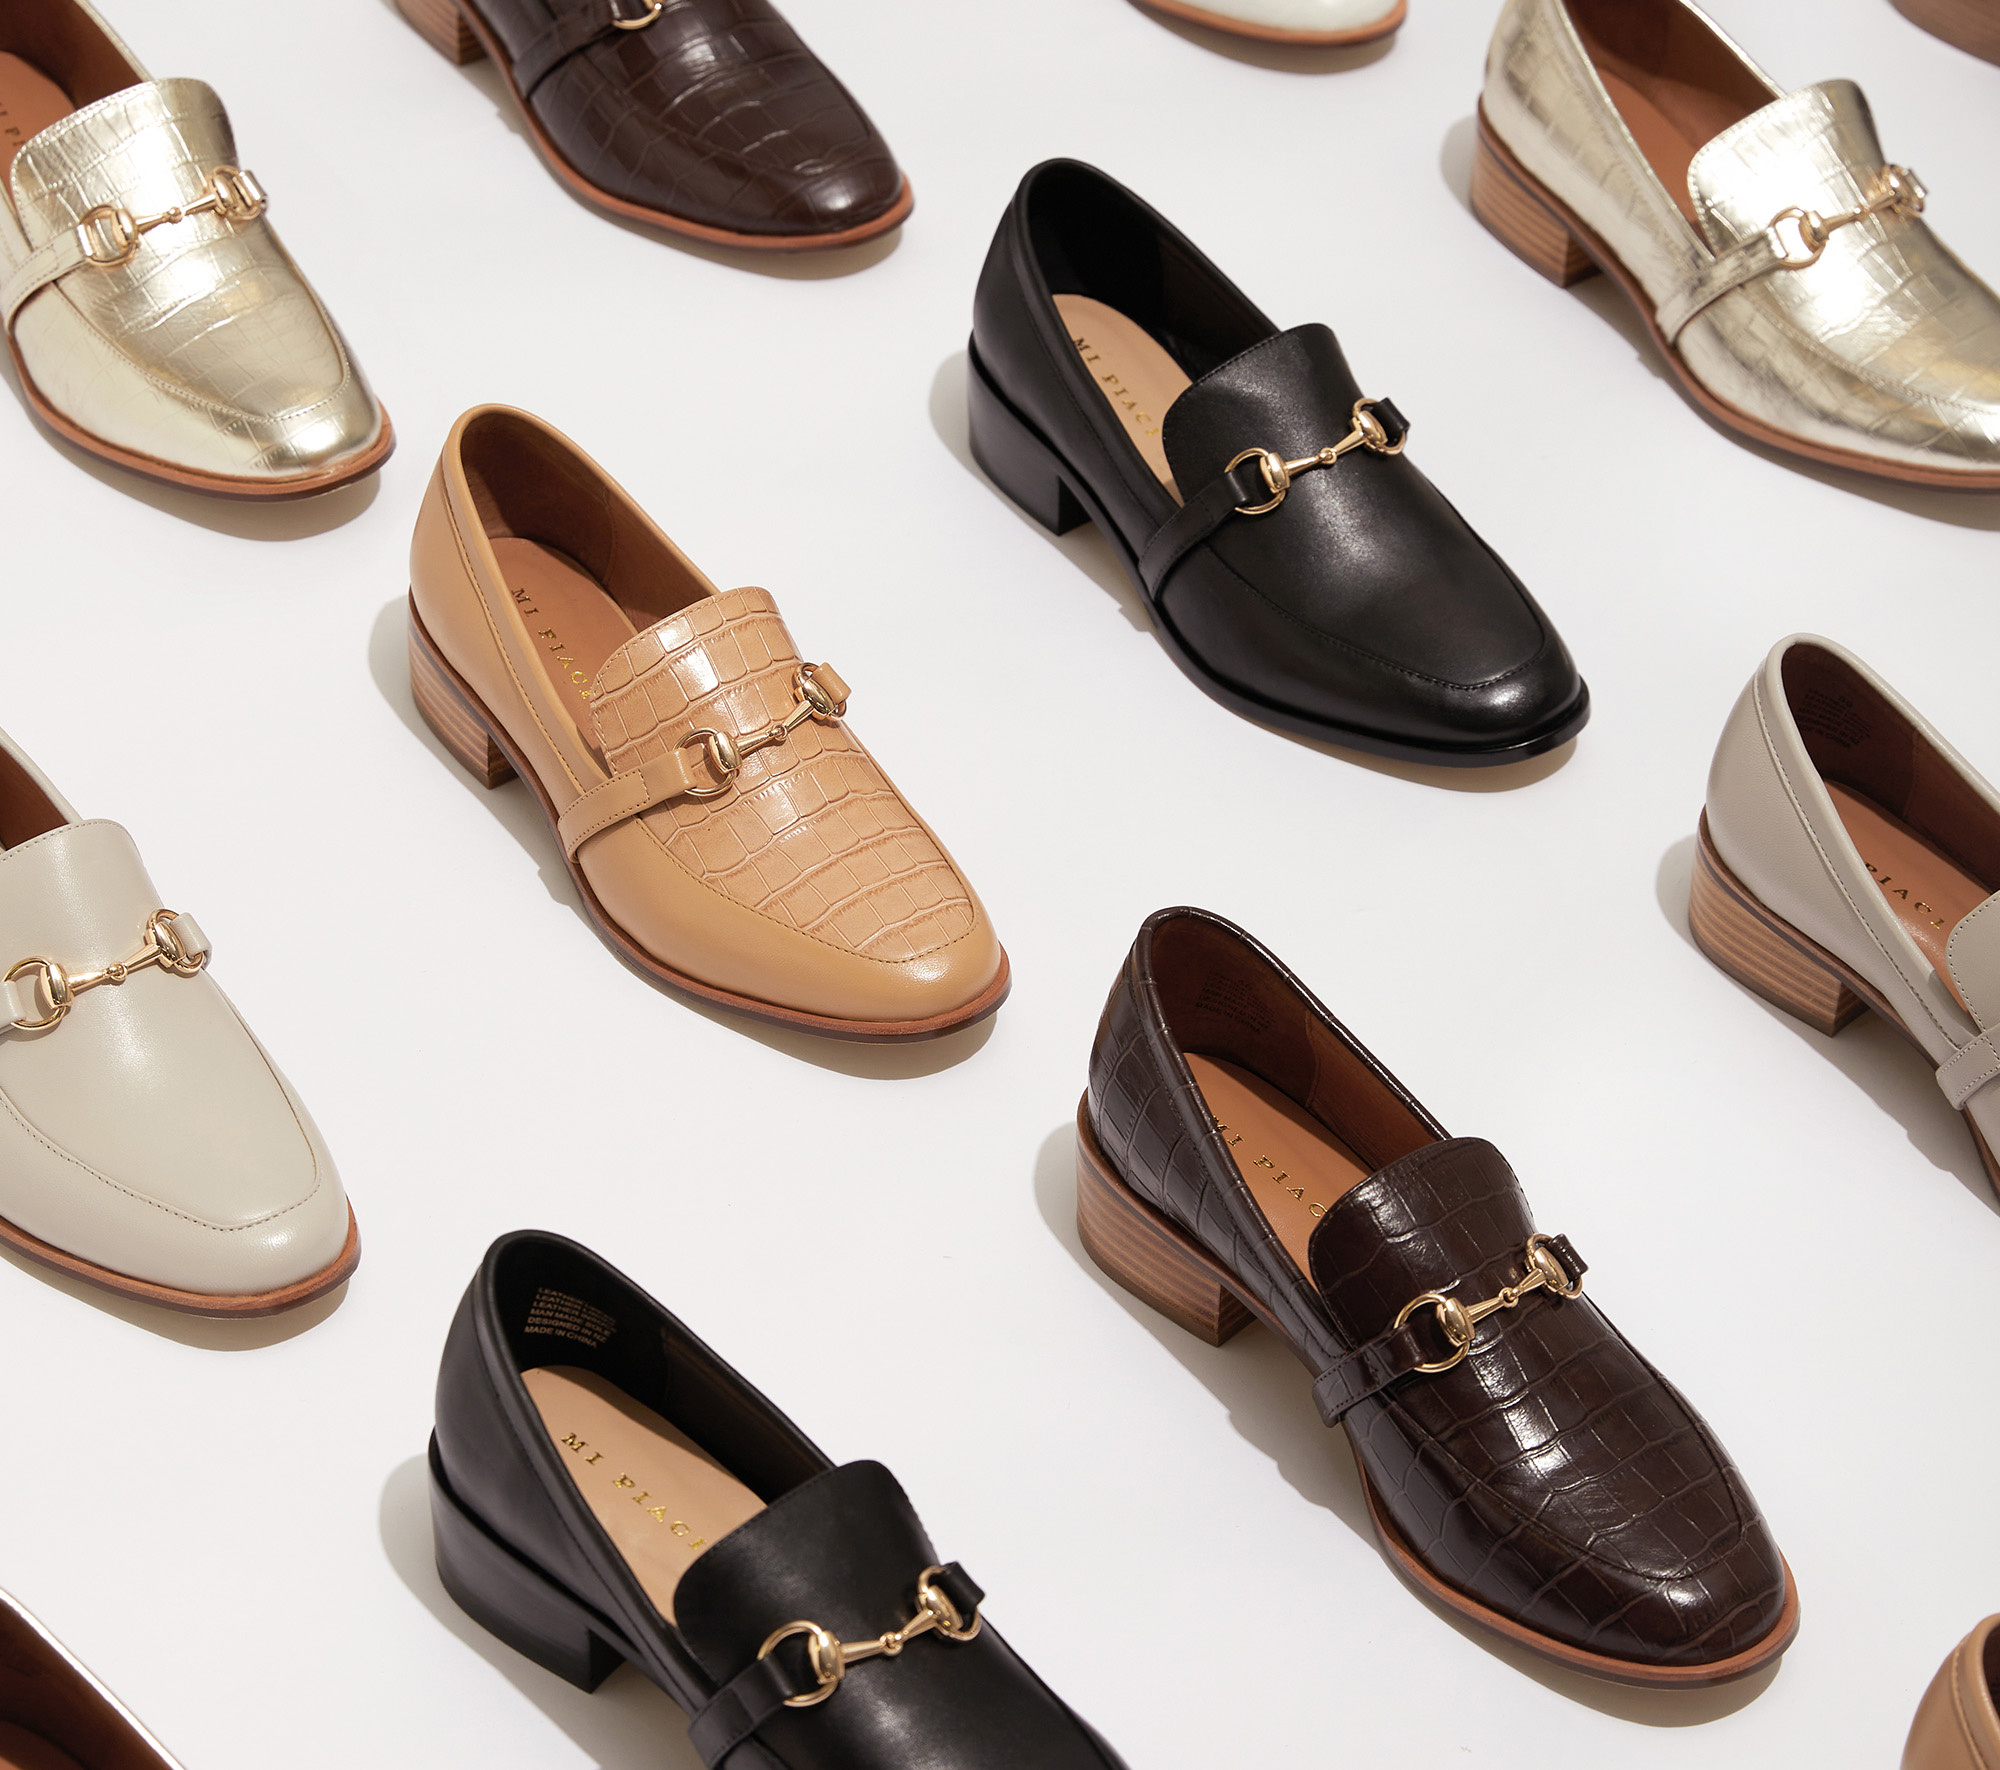 Spencer Loafer - The Icons Collection